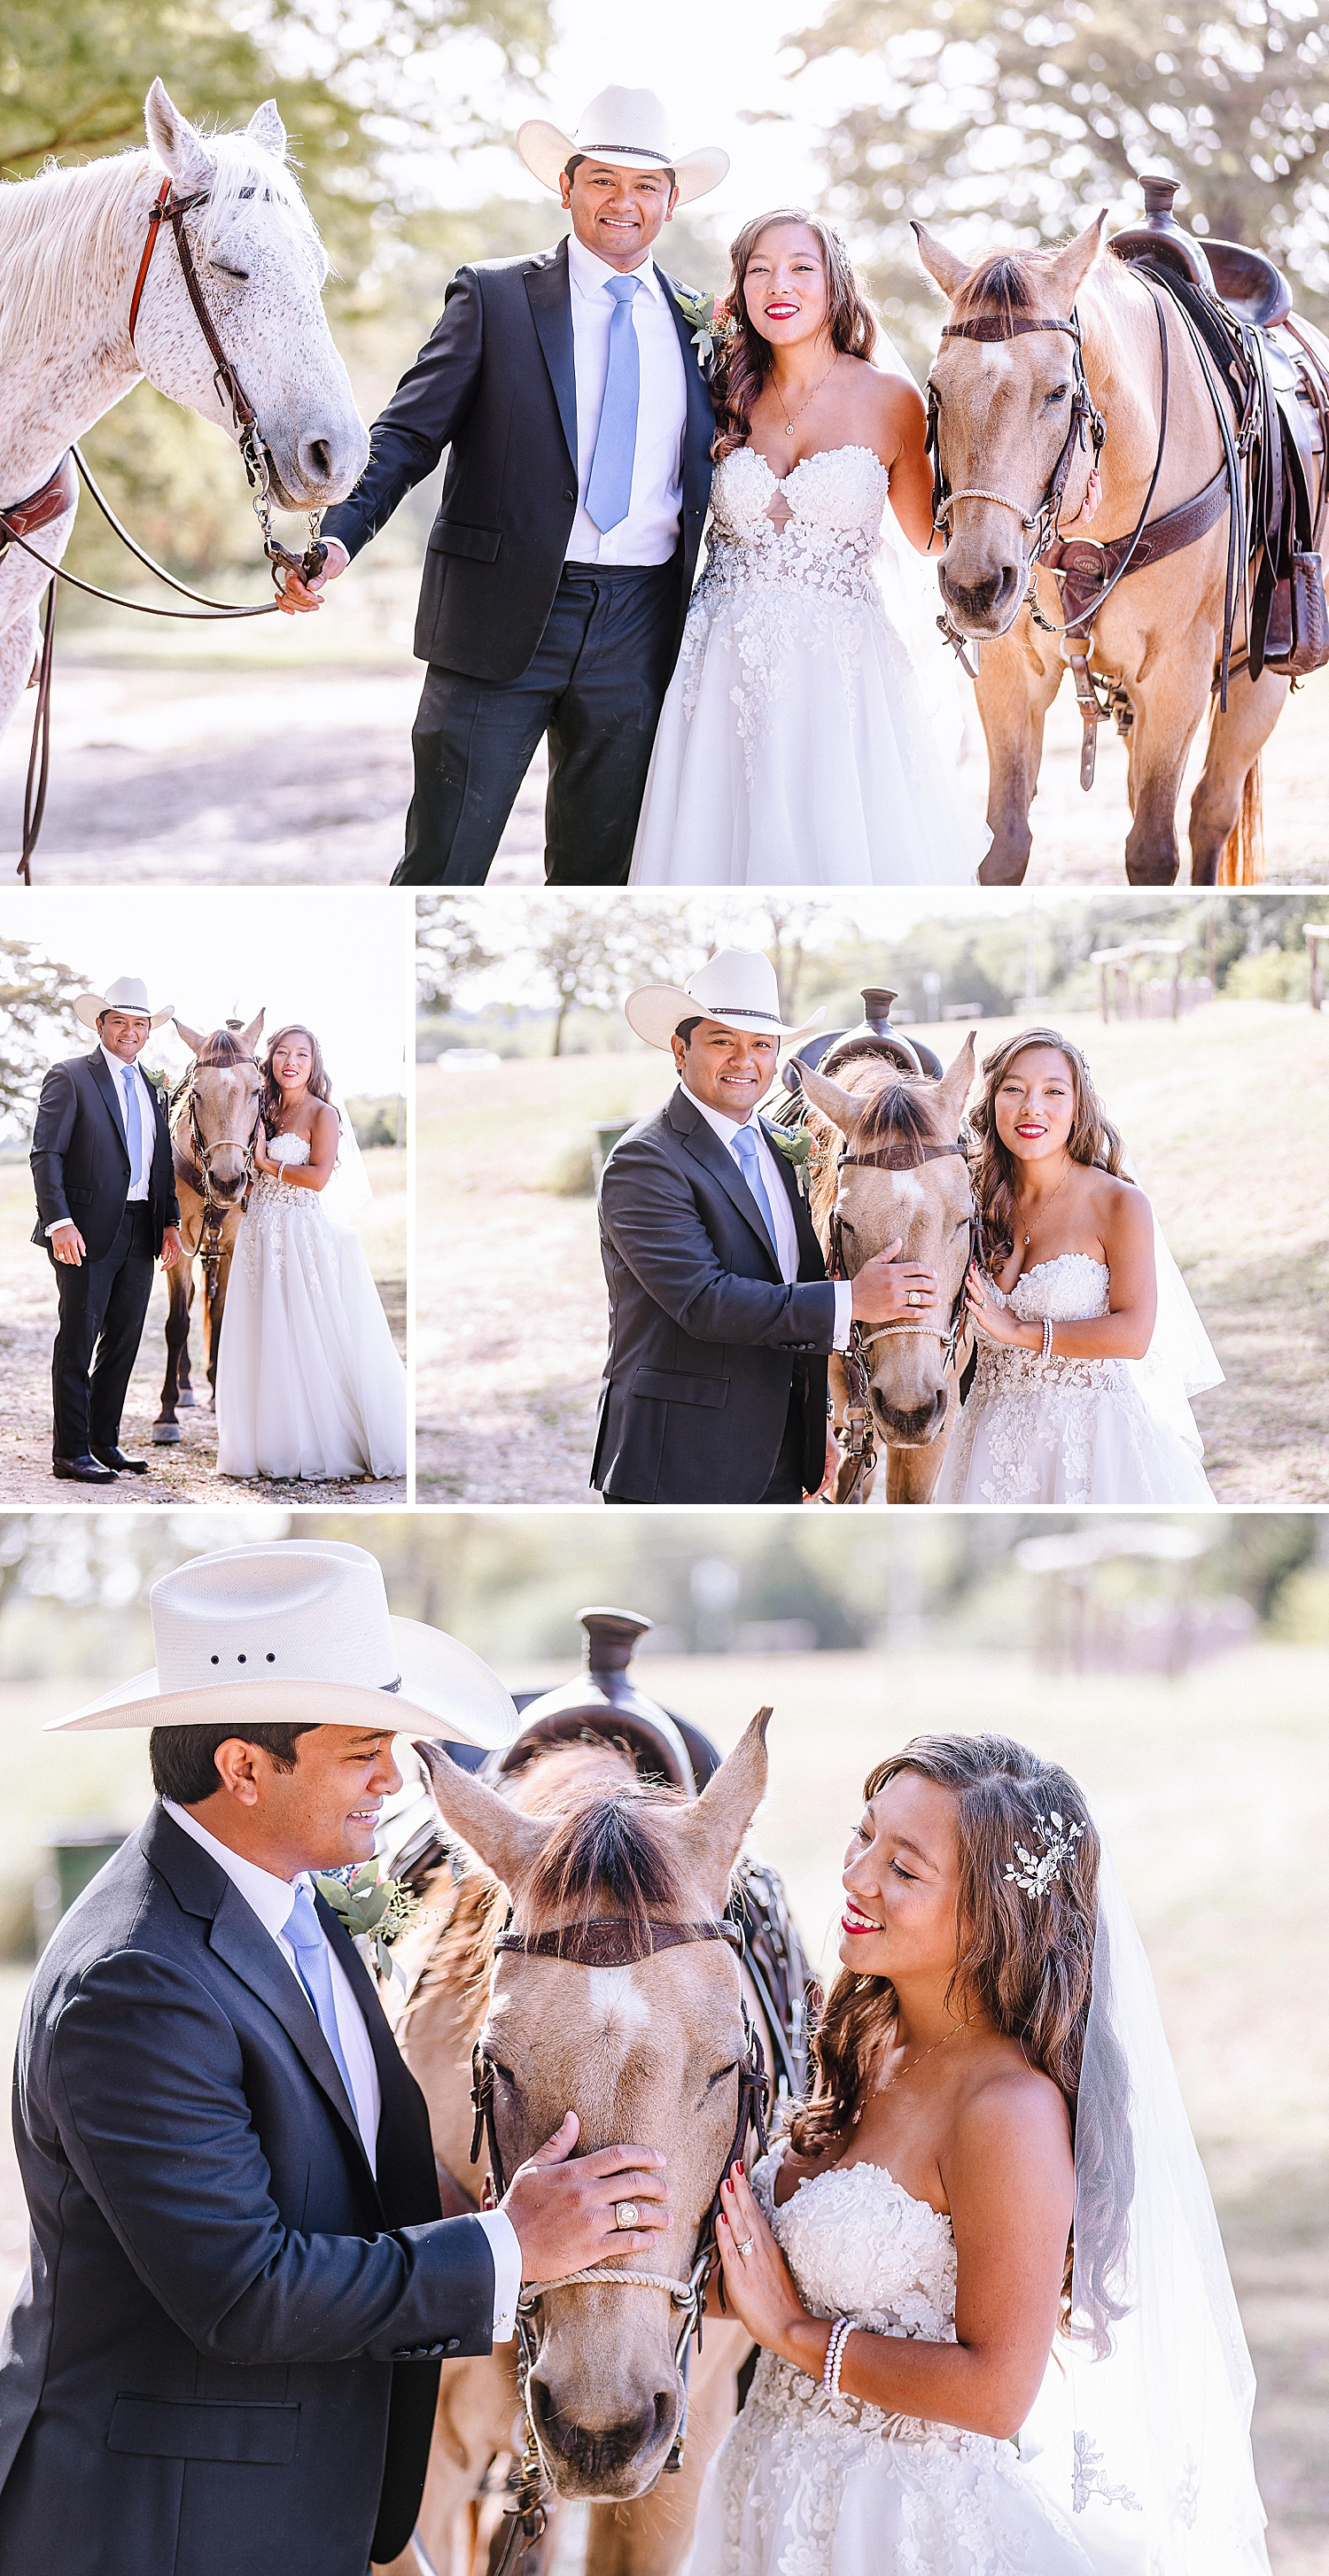 Bandera-Texas-Wedding-Photographer-Bride-Groom-on-Horses-Carly-Barton-Photography_0026.jpg